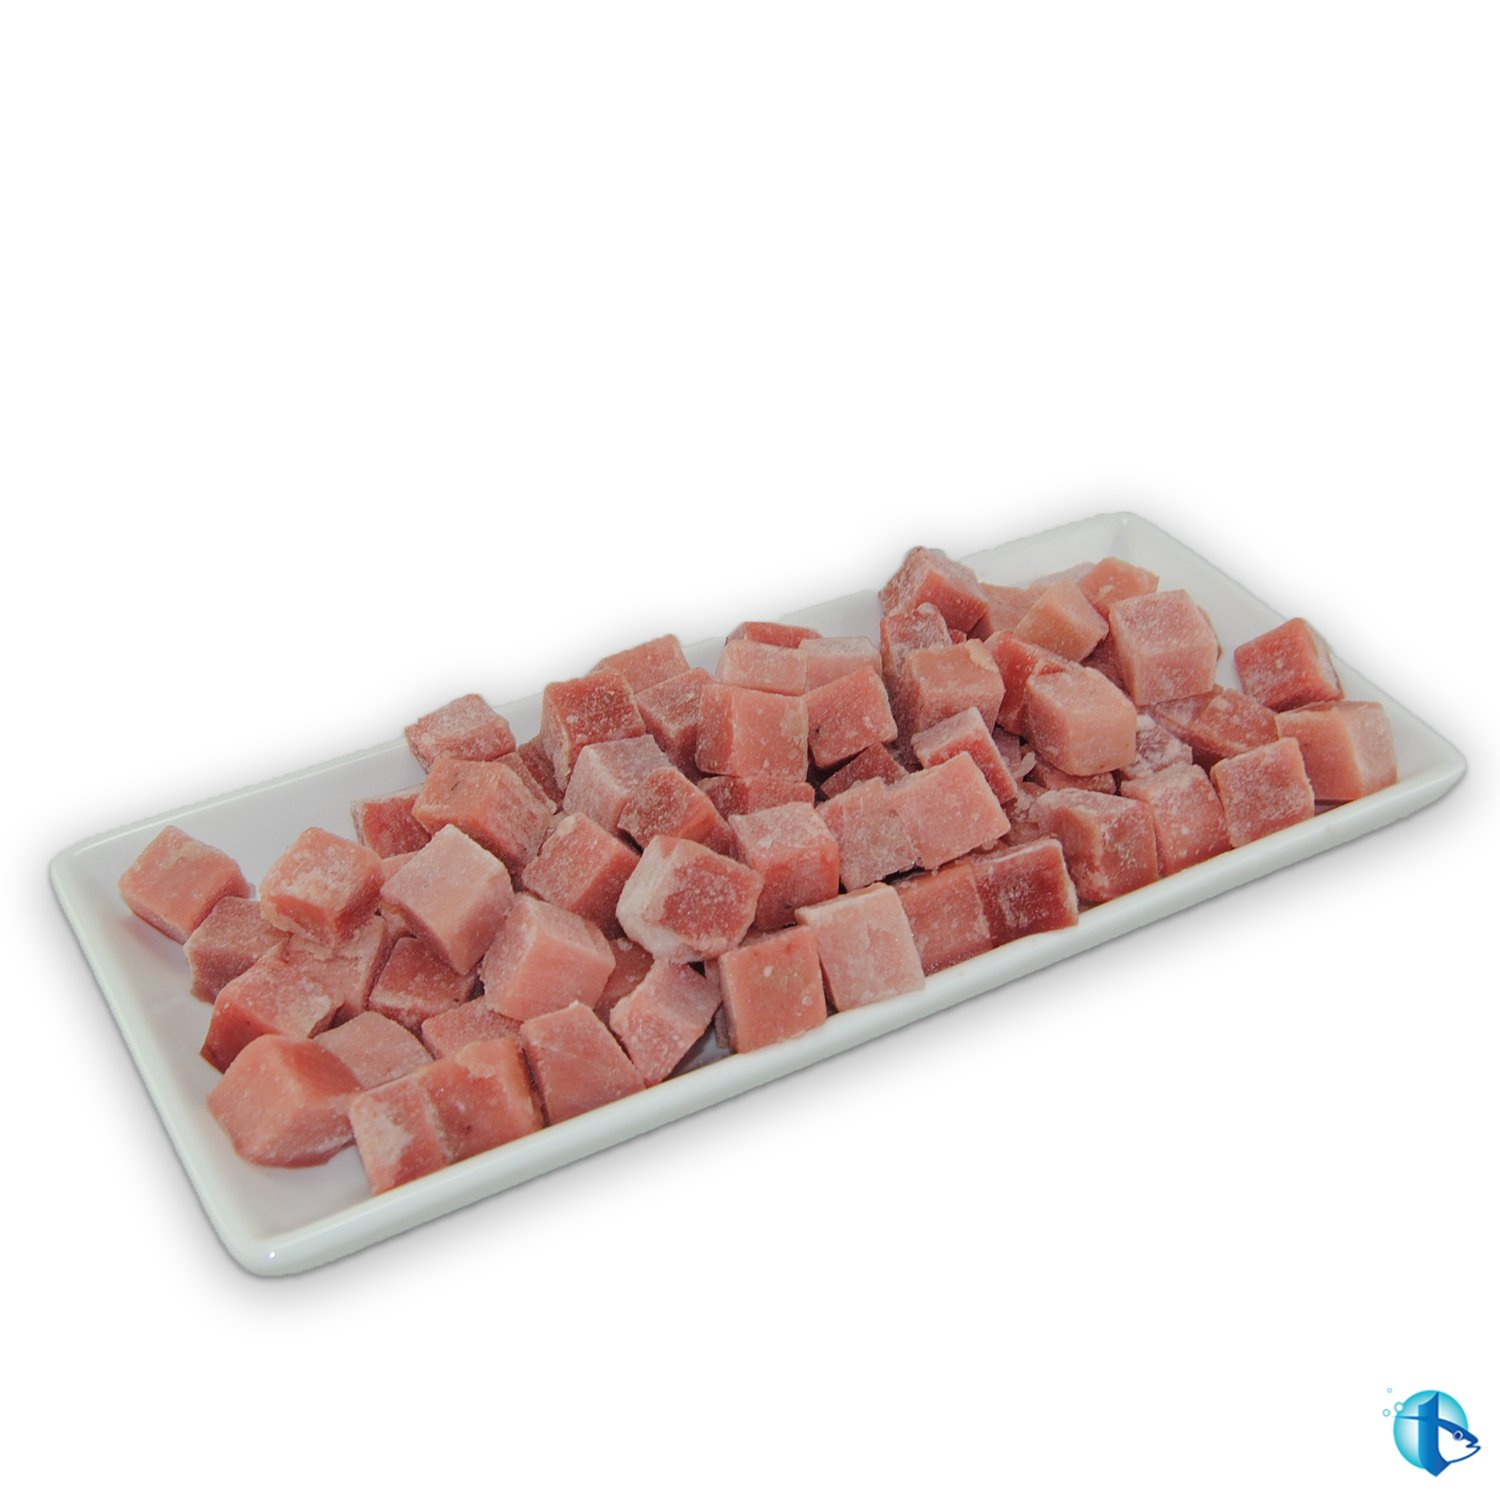 "Tristan ULT Frozen, Sashimi Grade Ahi Poke Cubes 5/8"" - 5 lbs. Skinless, Boneless, and Bloodline Removed"